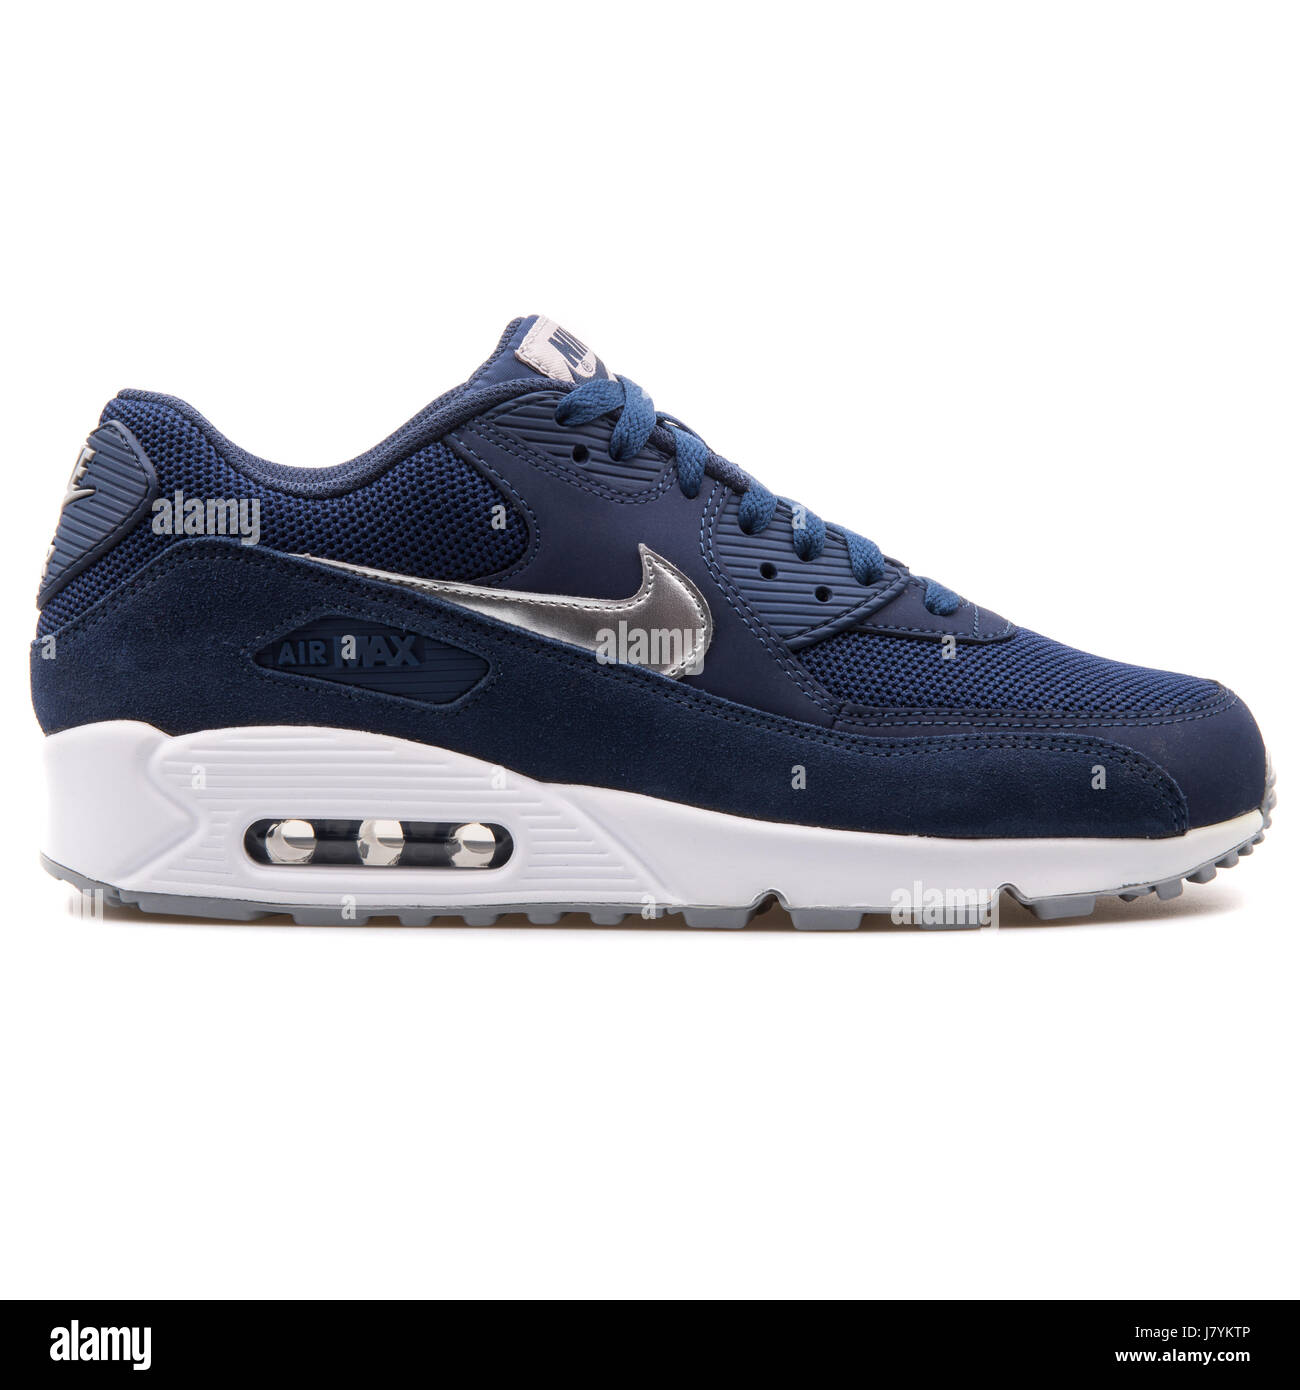 new arrival 7c9ca 634fc Nike Air Max 90 Essential Blue Men Sports Sneakers - 537384-411